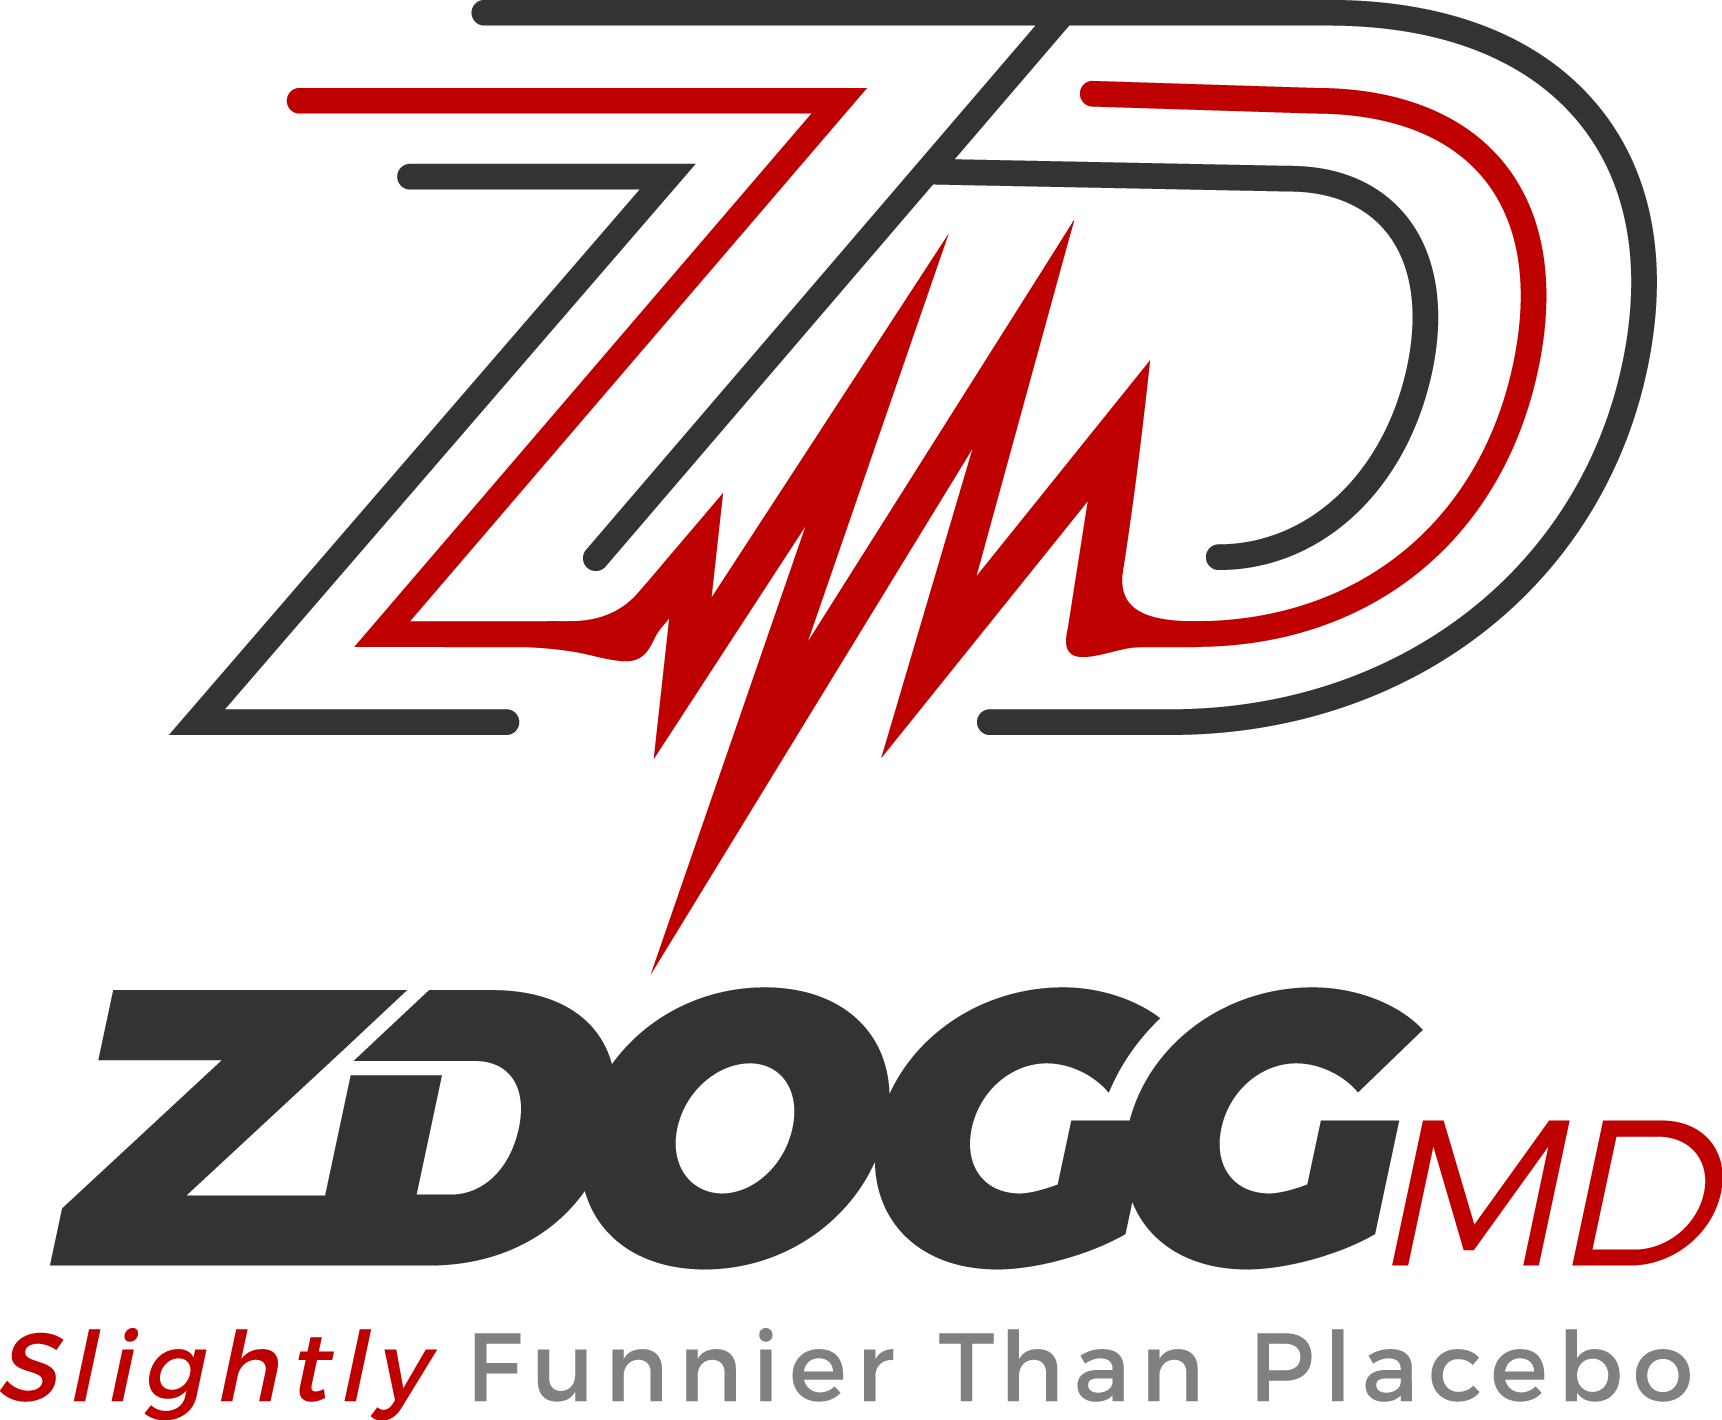 Physician, Rapper, & Healthcare Revolutionary ZDoggMD needs a dope logo, STAT!